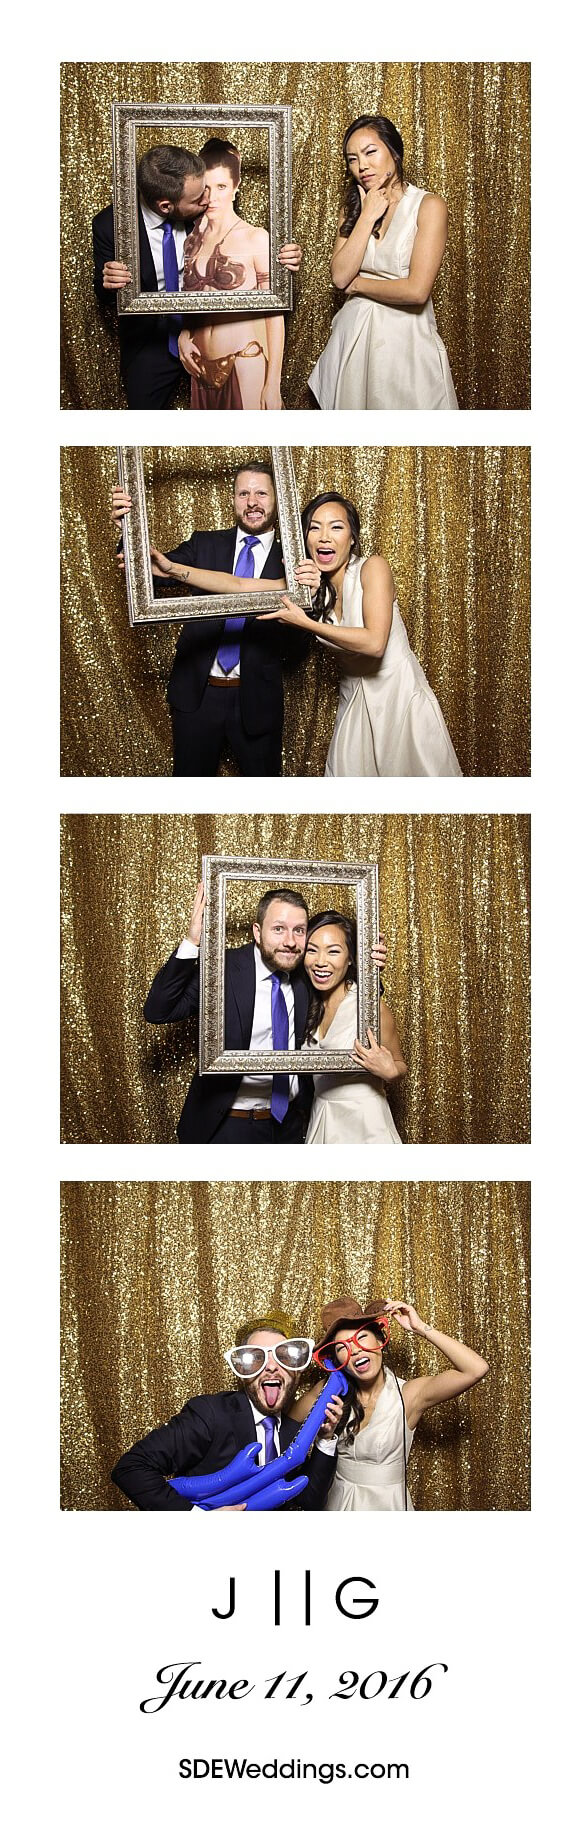 Toronto Four Seasons Hotel Wedding Photo Booth Rental 1